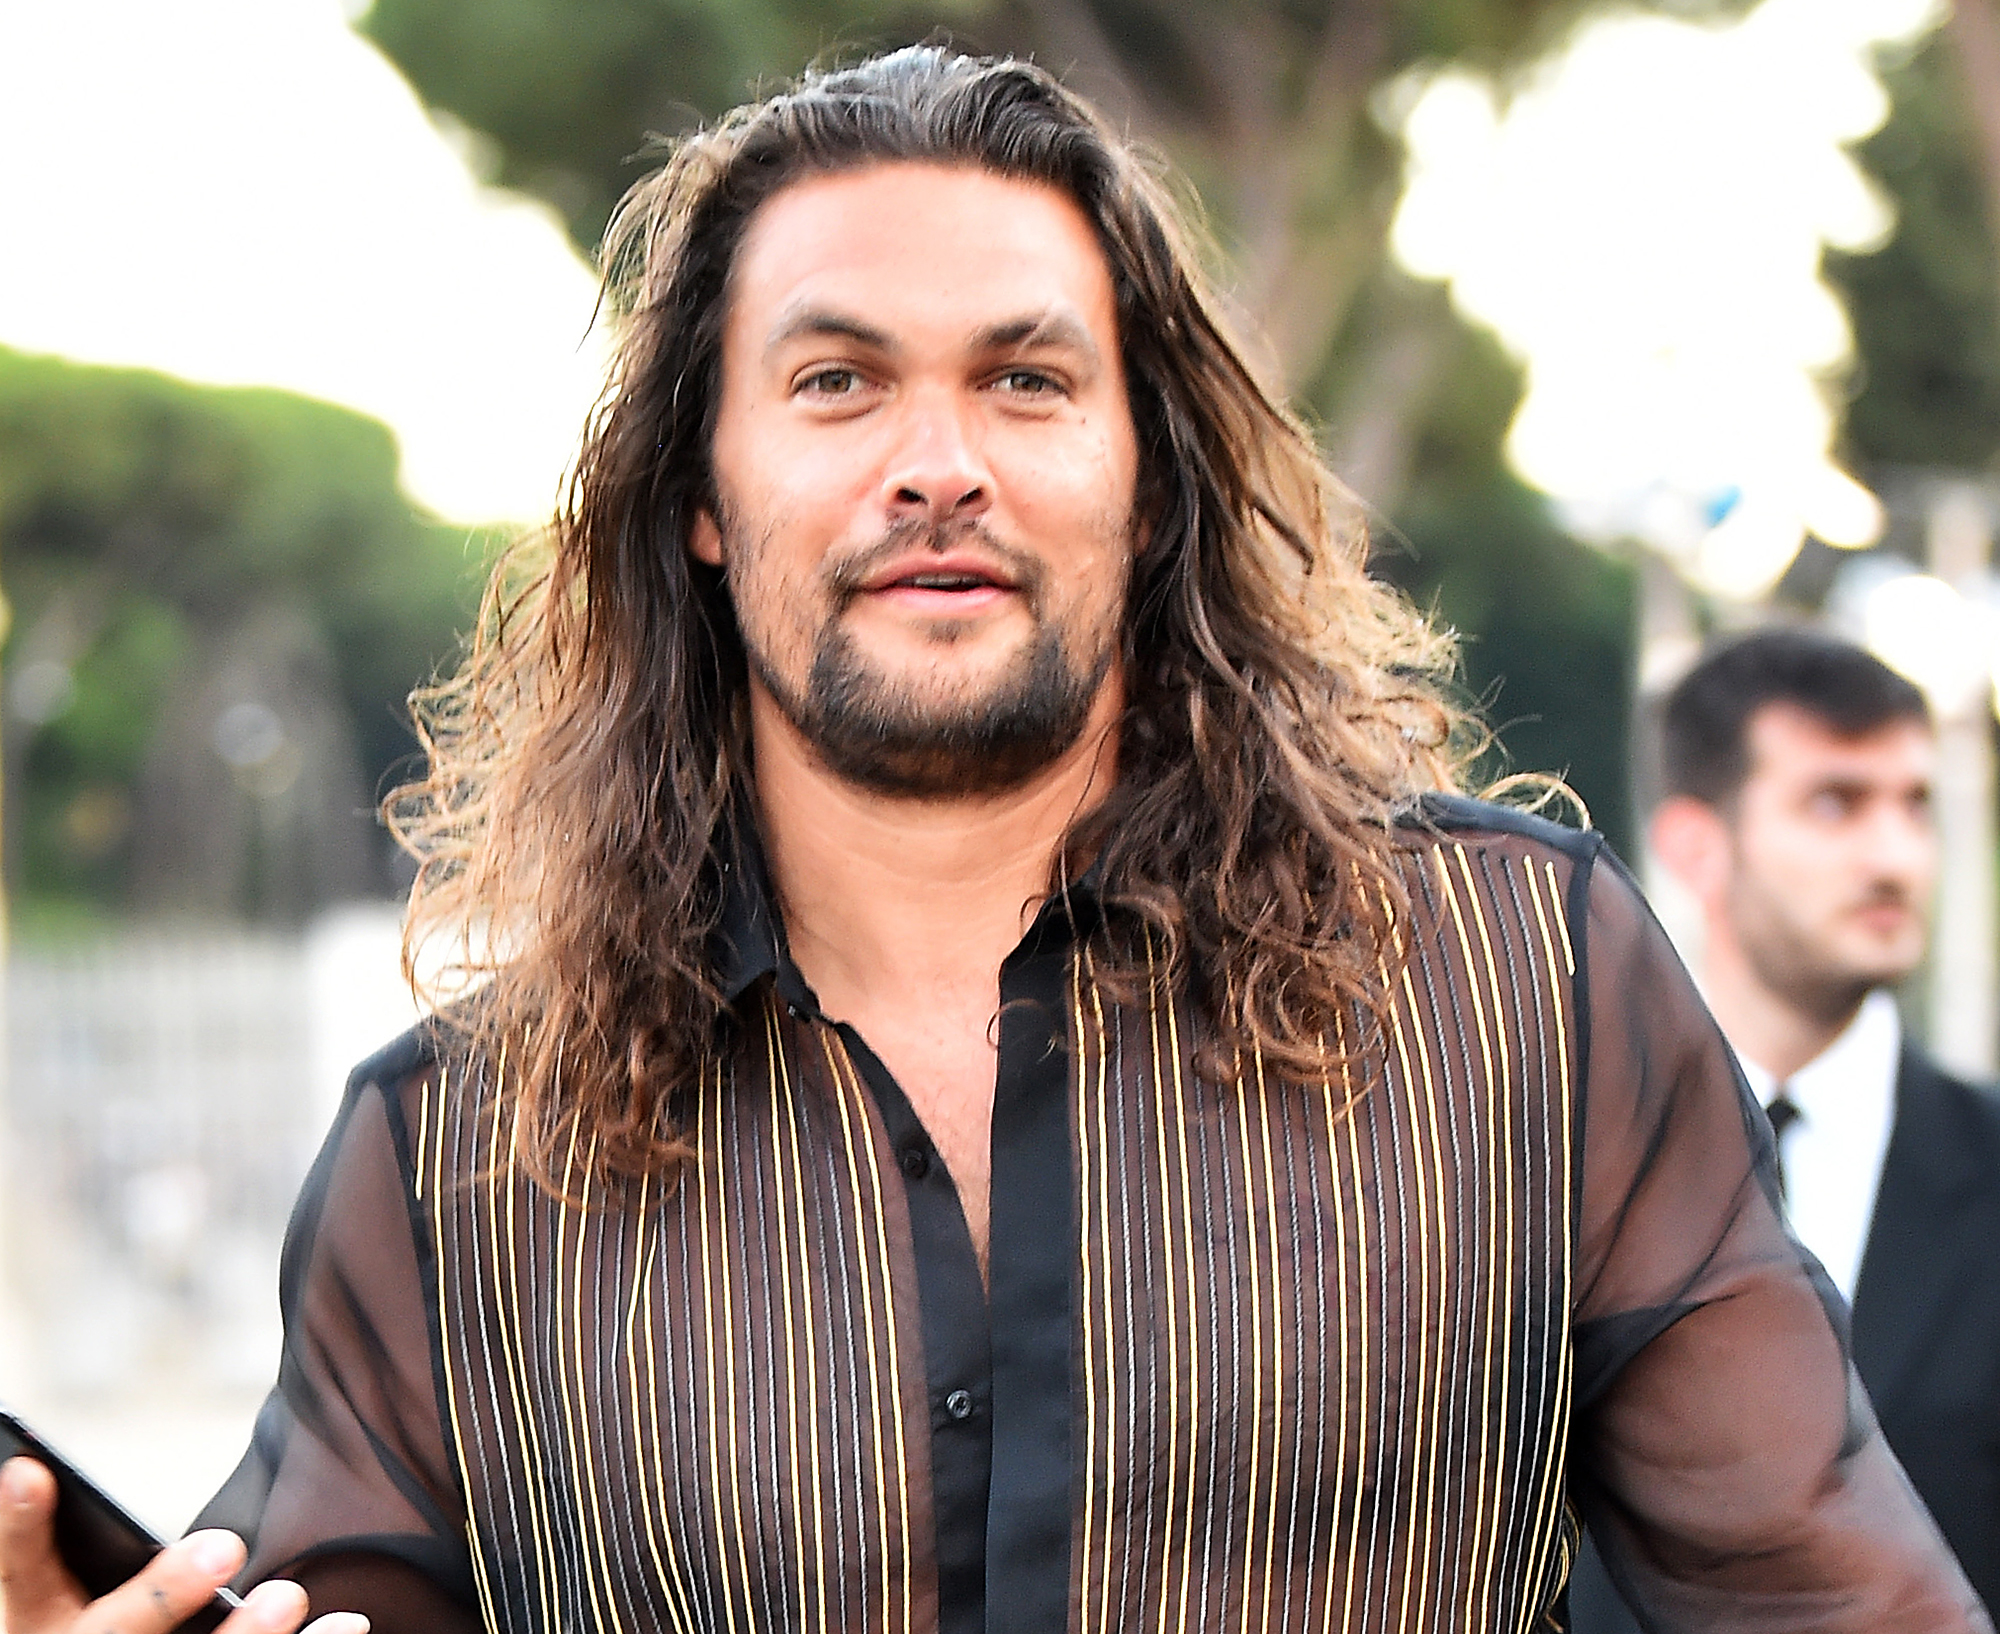 5e2614f8baee89 Fans Rally Behind Jason Momoa After He Is 'Dad Bod'-Shamed for Going  Shirtless on Vacation: It's a 'Come to Mama Bod'